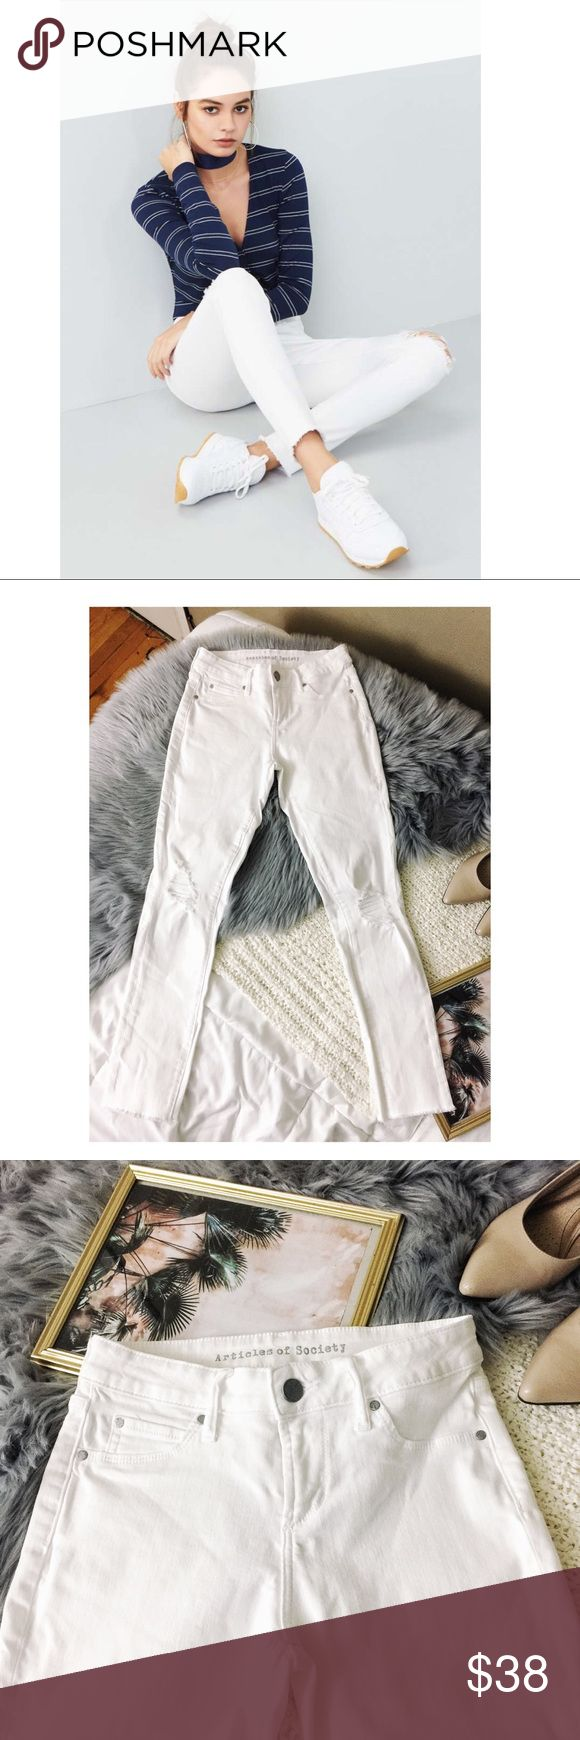 """Articles of Society White Distressed Skinny Jeans Articles of society Sarah white Distressed Skinny Jeans Size 24 Condition: no known flaws or stains   Features  Raw hems and roughed-up patches belie the fresh, clean appeal of bright-white super-skinny jeans cut from a stretchy cotton-blend denim. Zip fly with button closure Faux front pockets; coin pocket; back pockets 80% cotton, 18% rayon, 2% spandex  Approximate measurements  Length 35.5""""  Inseam 26.5"""" Rise 8"""" Waist 13"""" across Articles…"""